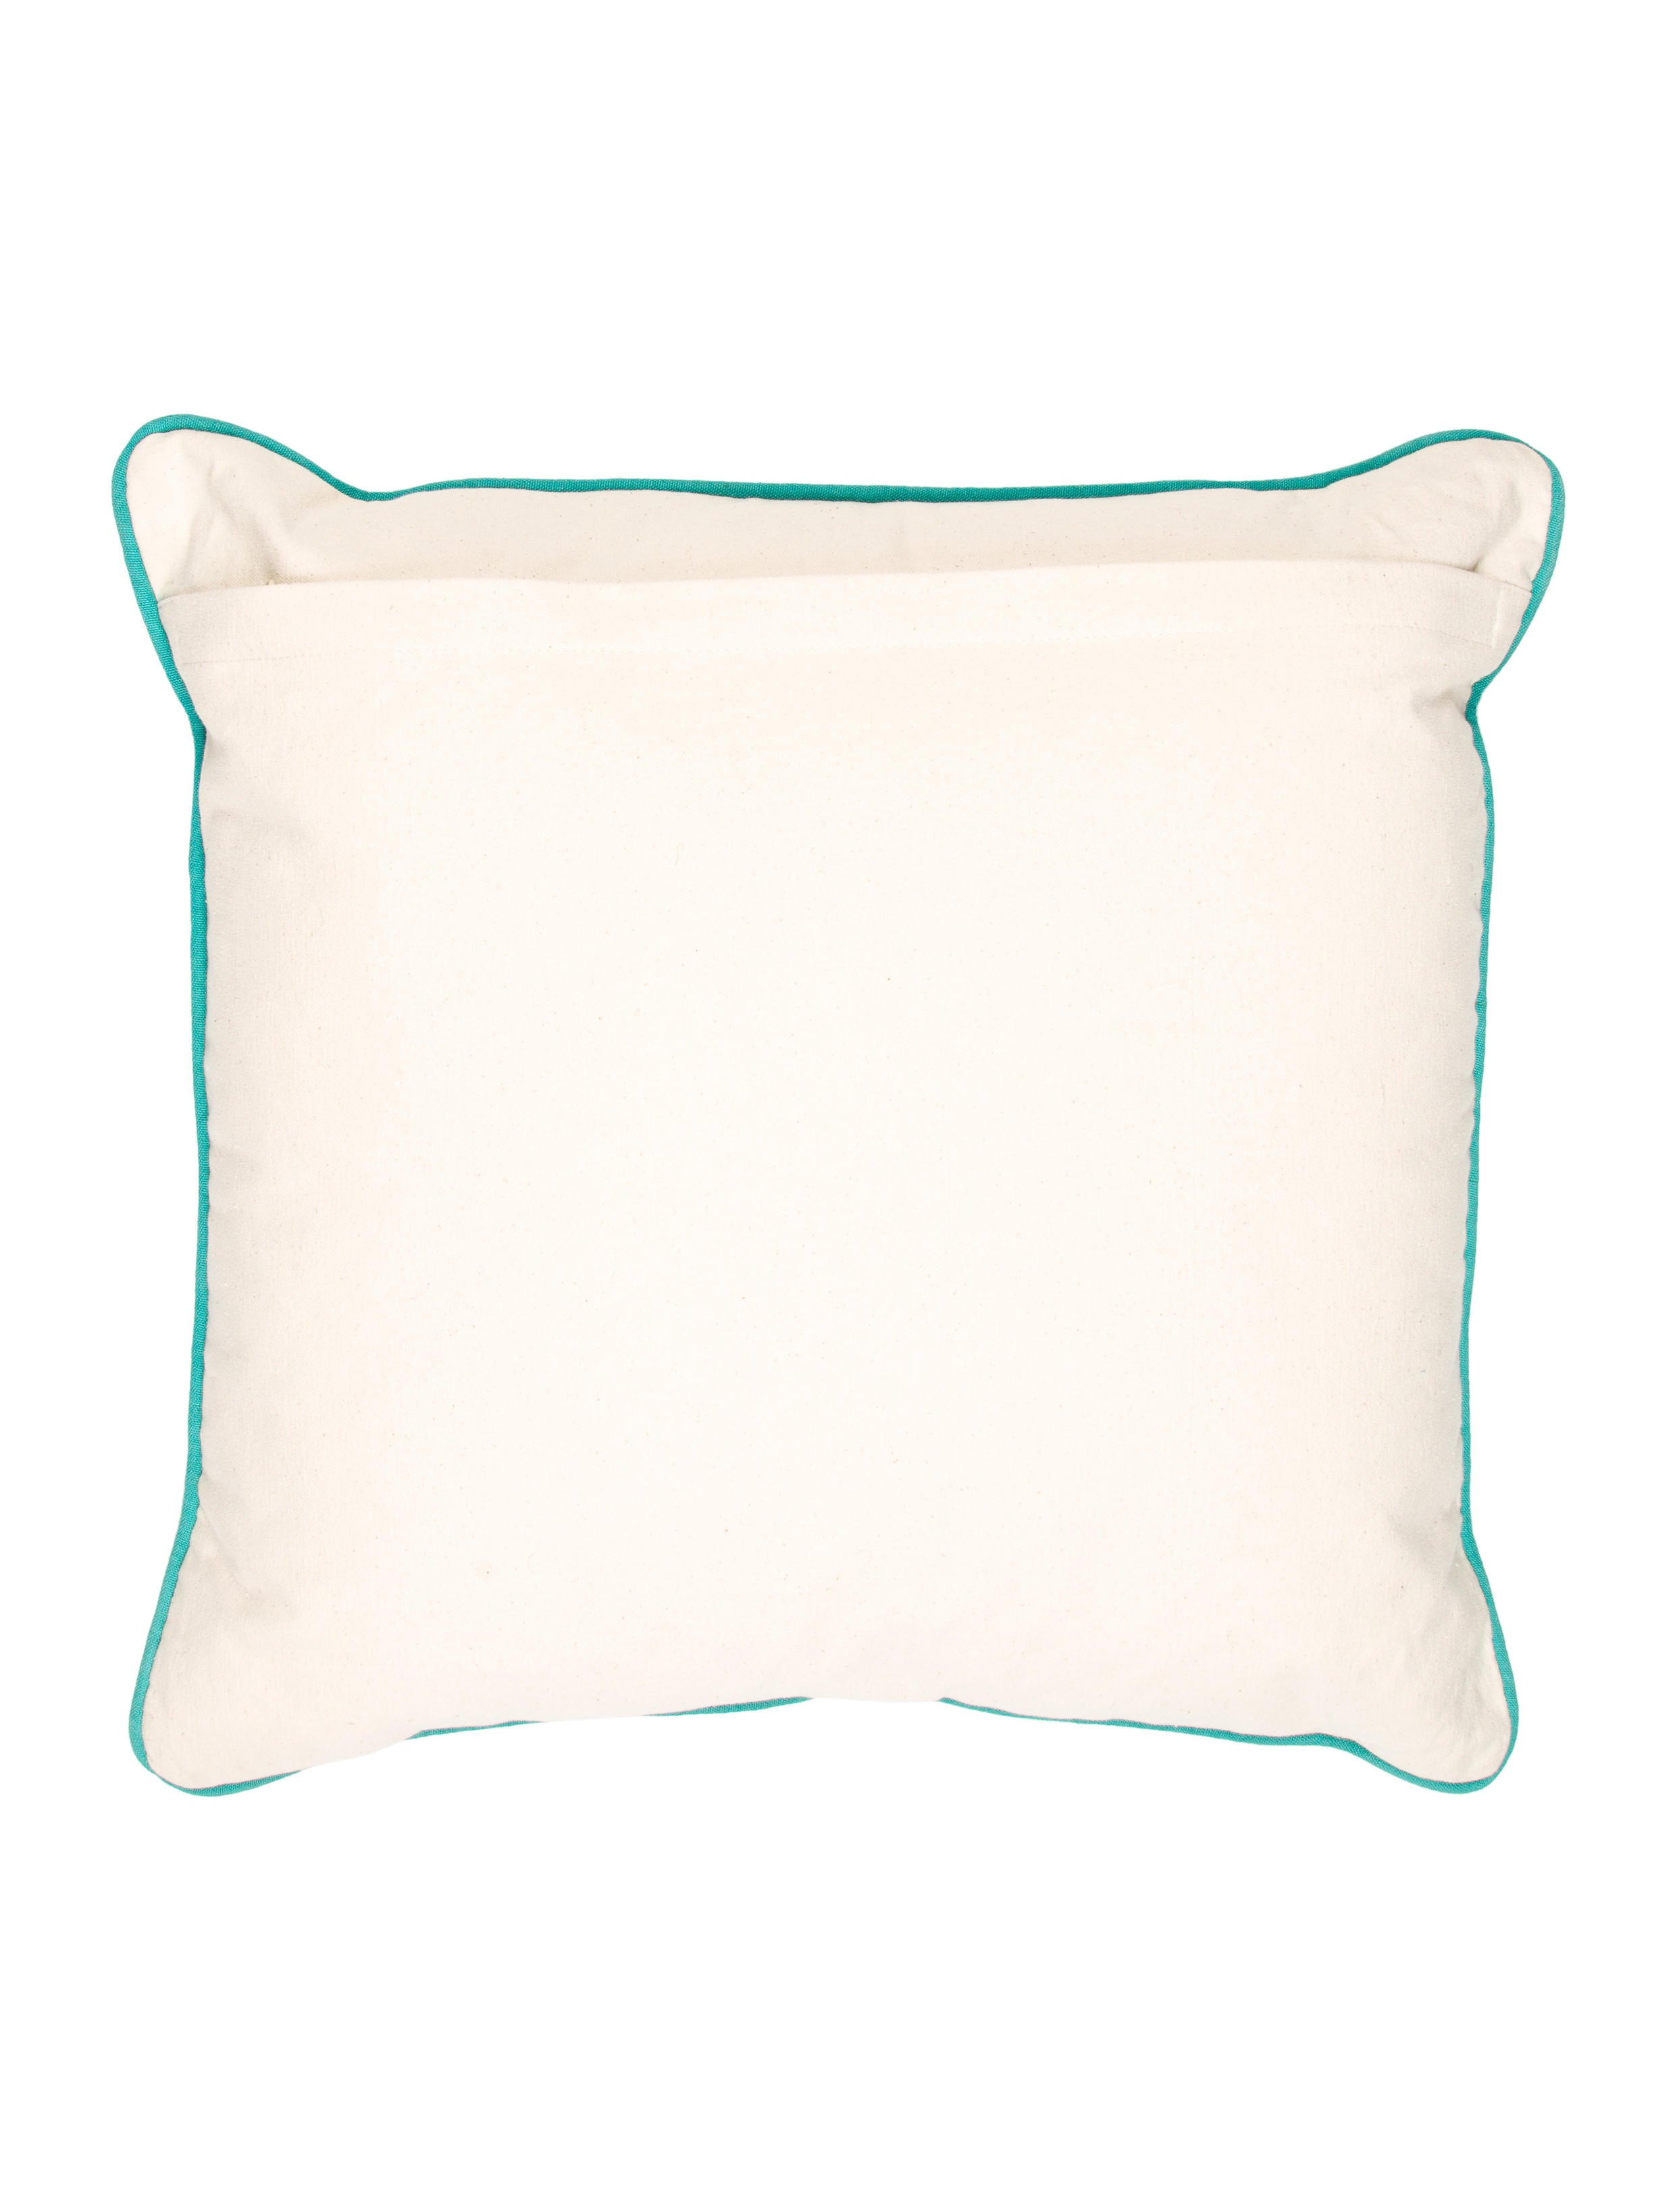 Throw Pillows With Letters On Them : The Rug Company Alphabet Throw Pillow - Pillows And Throws - RUGCO20004 The RealReal